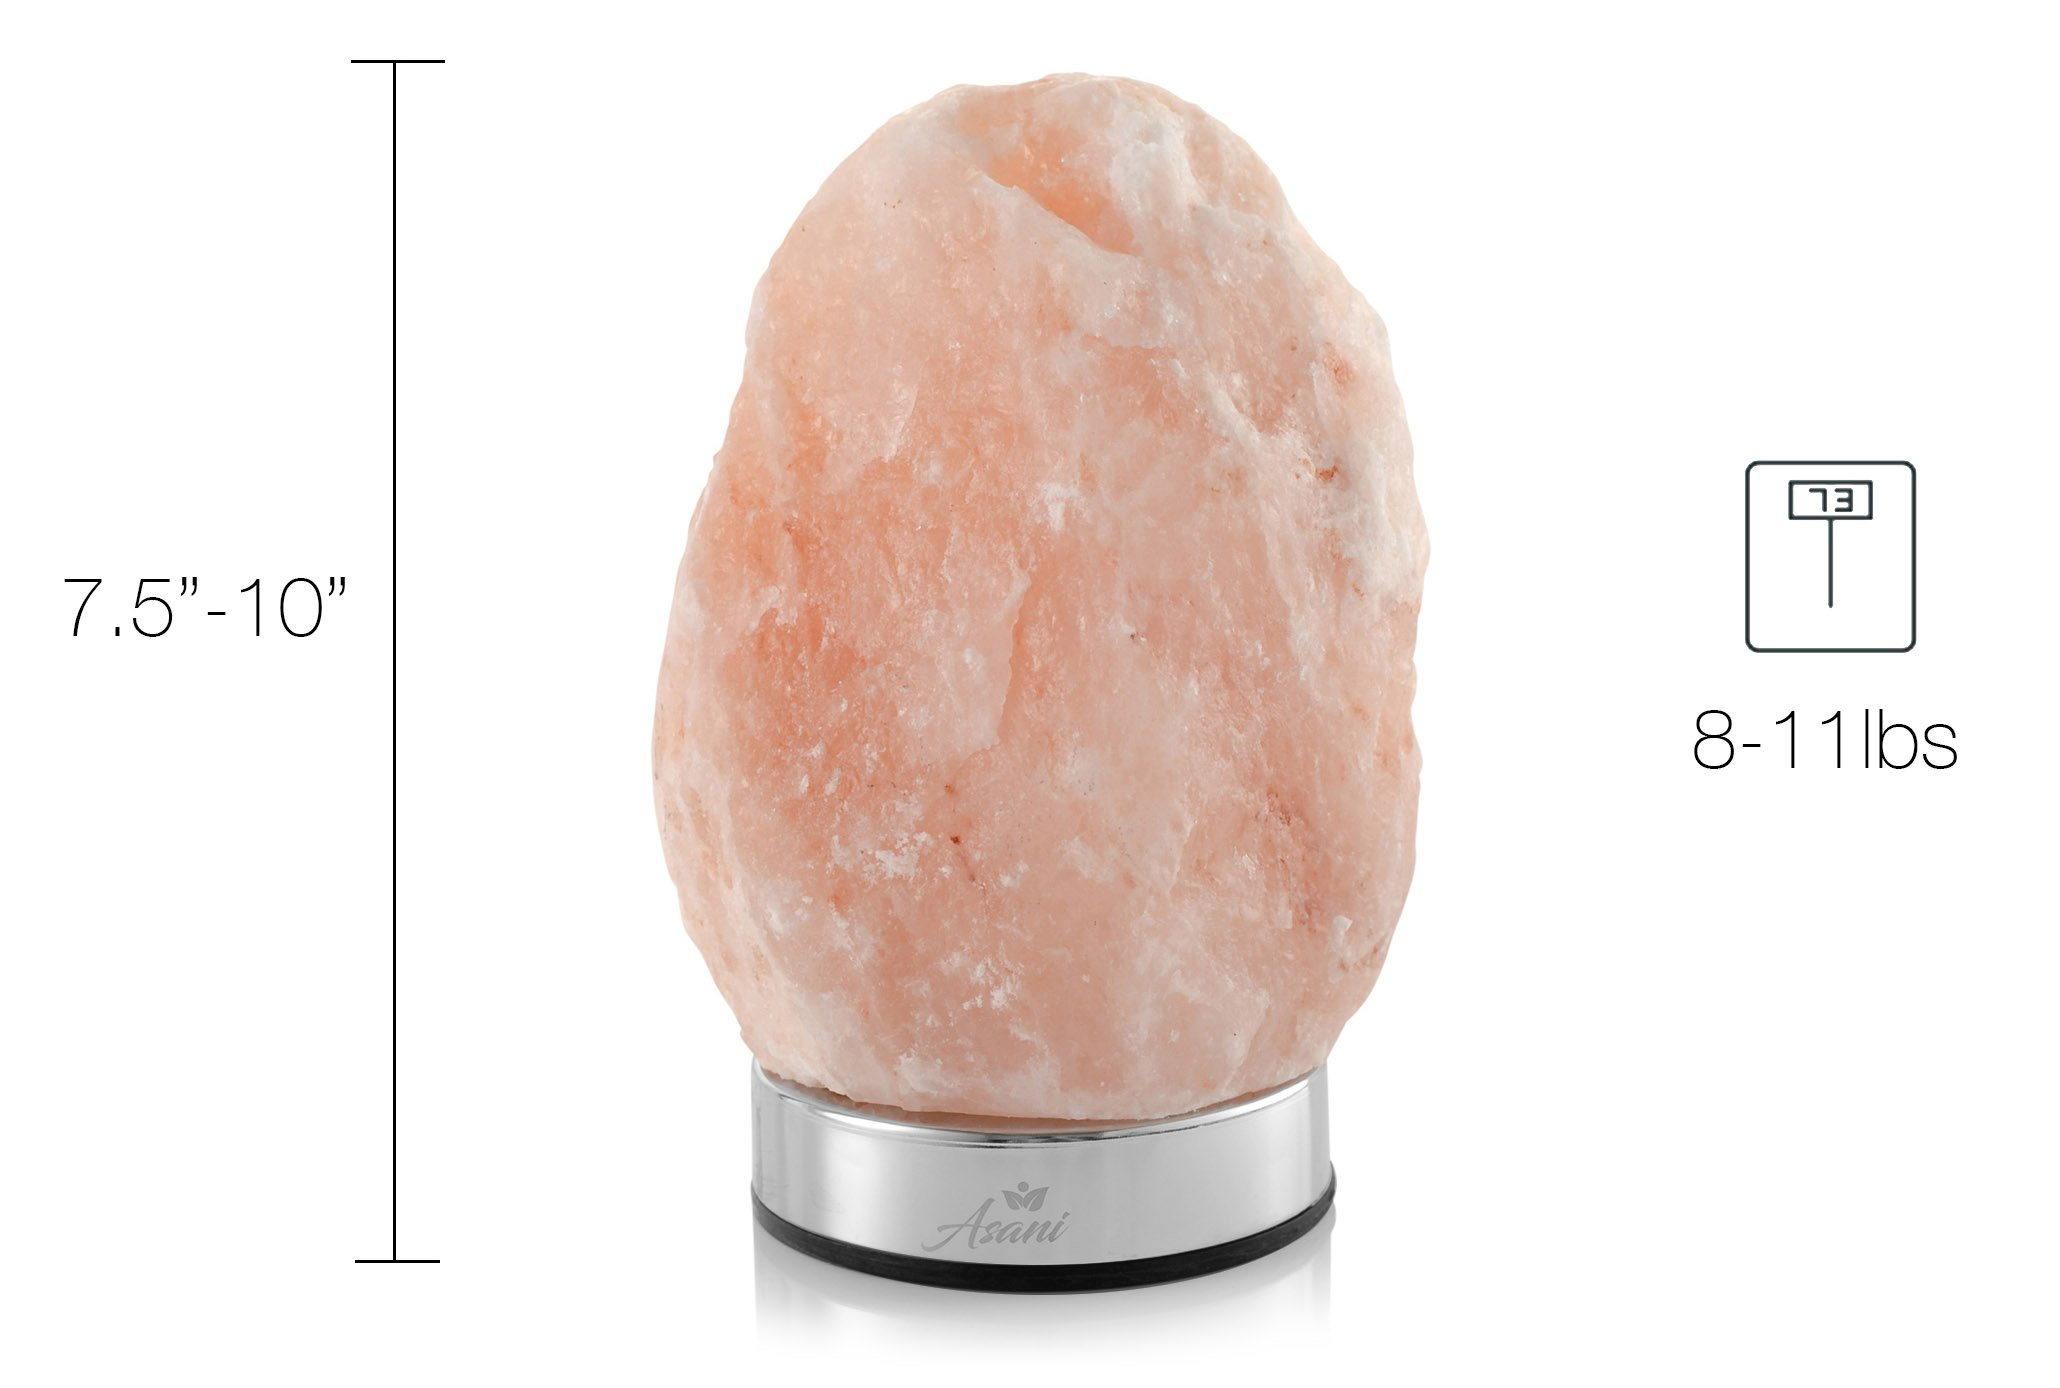 Asani Himalayan Light Salt Crystal Lamp (7-11 lbs, 8-10'' Height) WITH FREE GIFT BOX | Metal Dimmer Touch Base | Hand Crafted Ionic HPS Pink Rock Lamps for Natural Air Purifying and Lighting by Asani (Image #7)